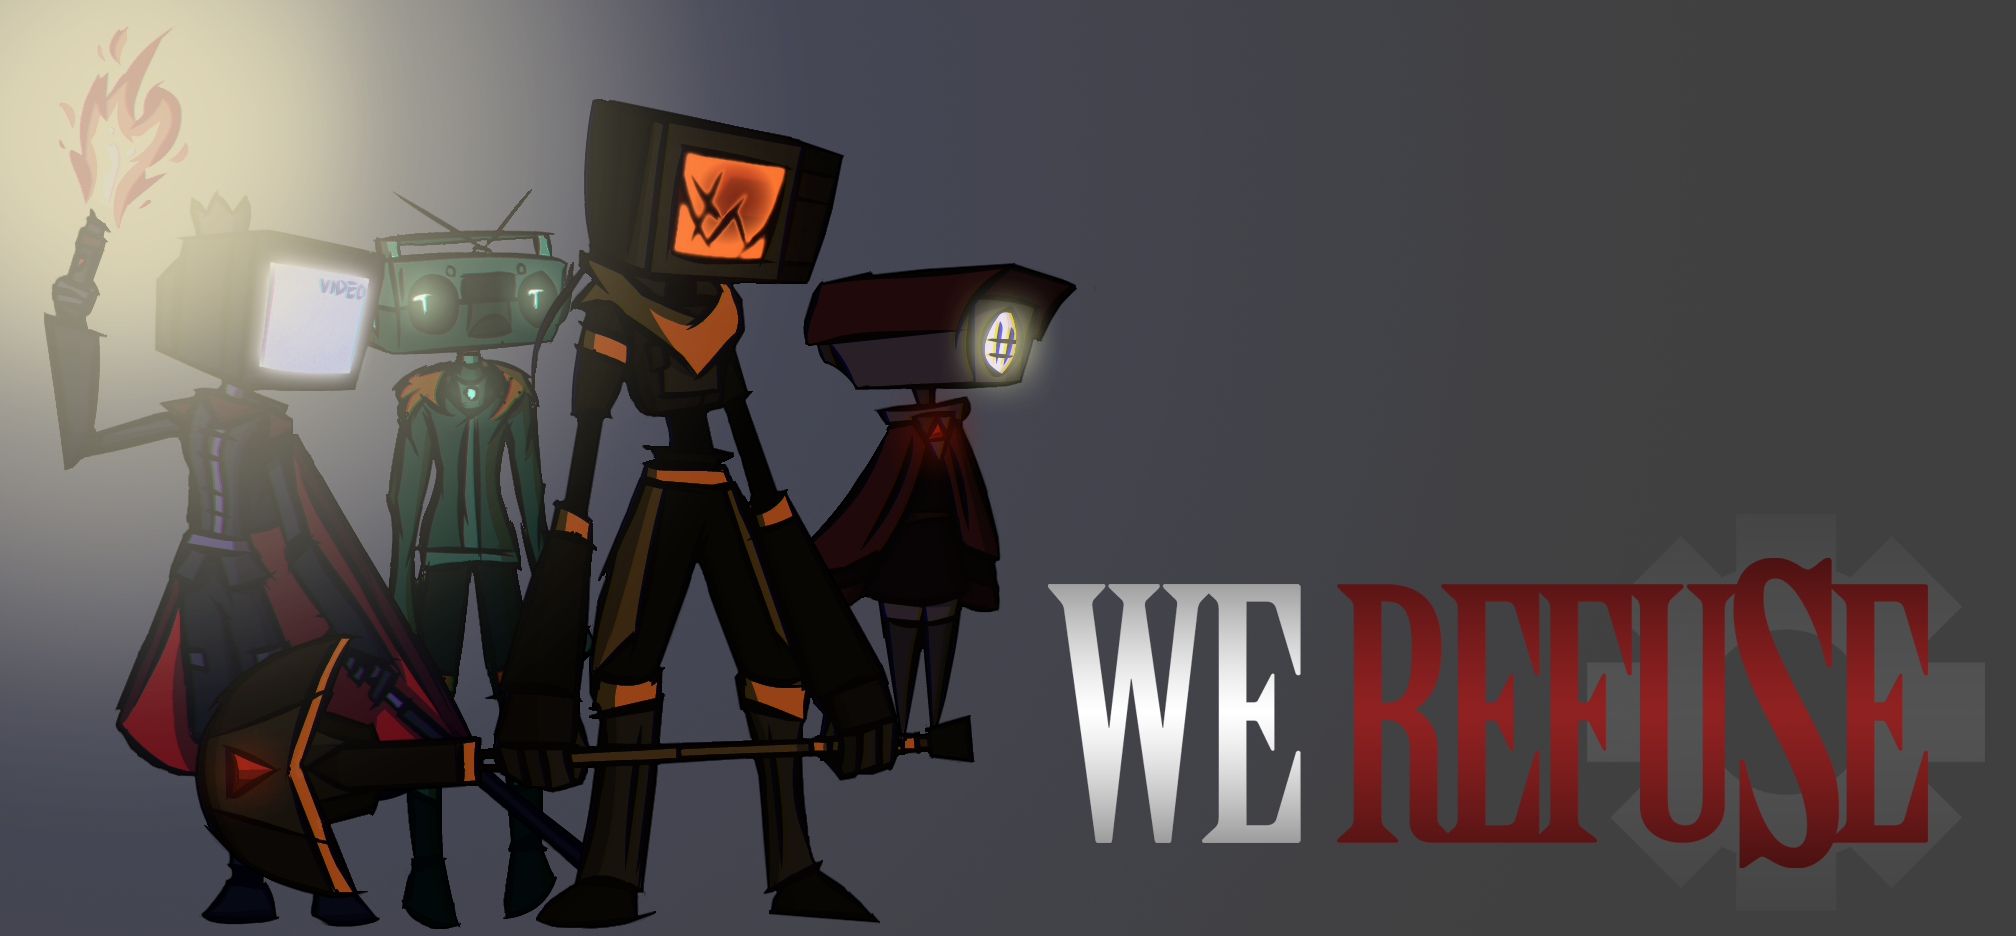 We Refuse Steven Brandle Game Design Portfolio - Game design portfolio